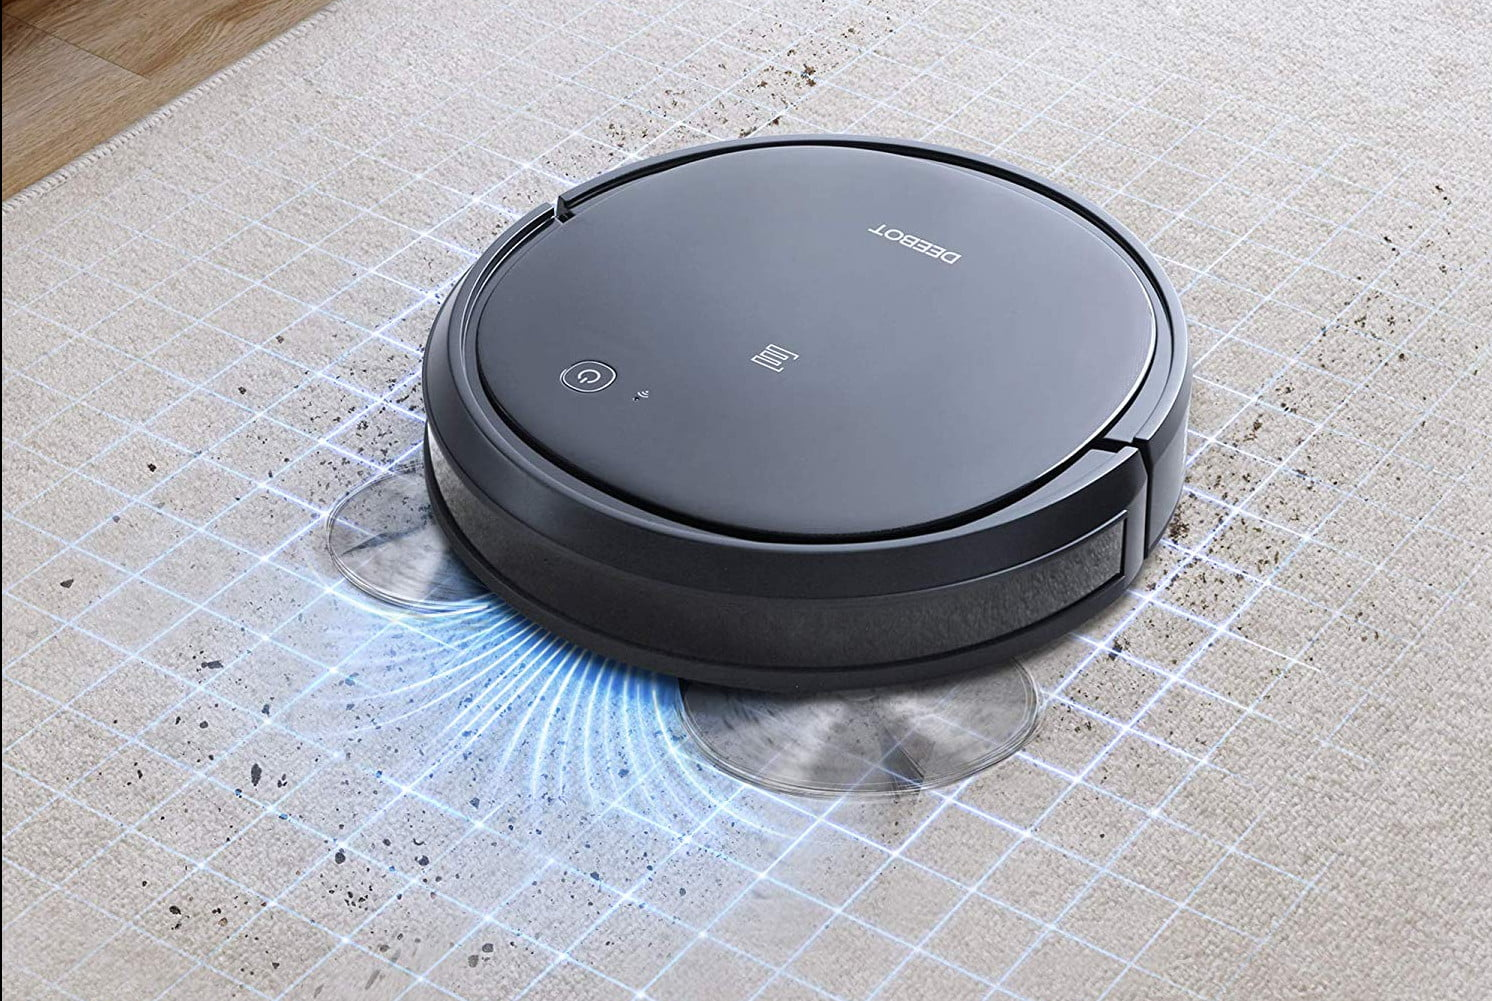 Amazon cuts 52% off the price of the Ecovacs Deebot 500 robotic vacuum cleaner